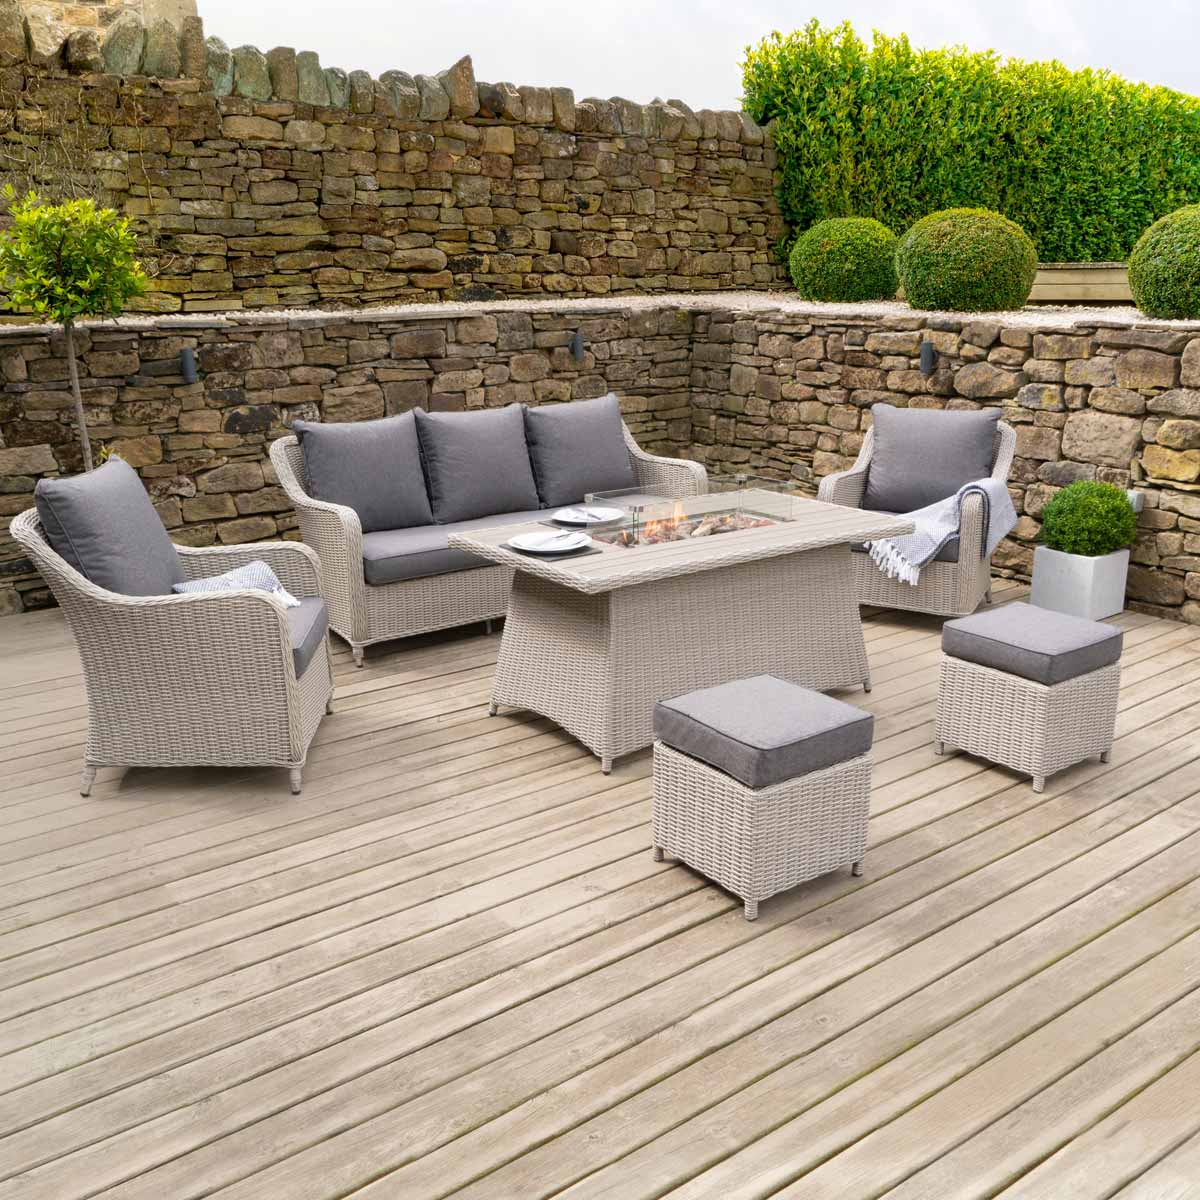 Pacific Lifestyle Antigua Seating Set with Relaxed Dining Fire Pit Table - Stone Grey